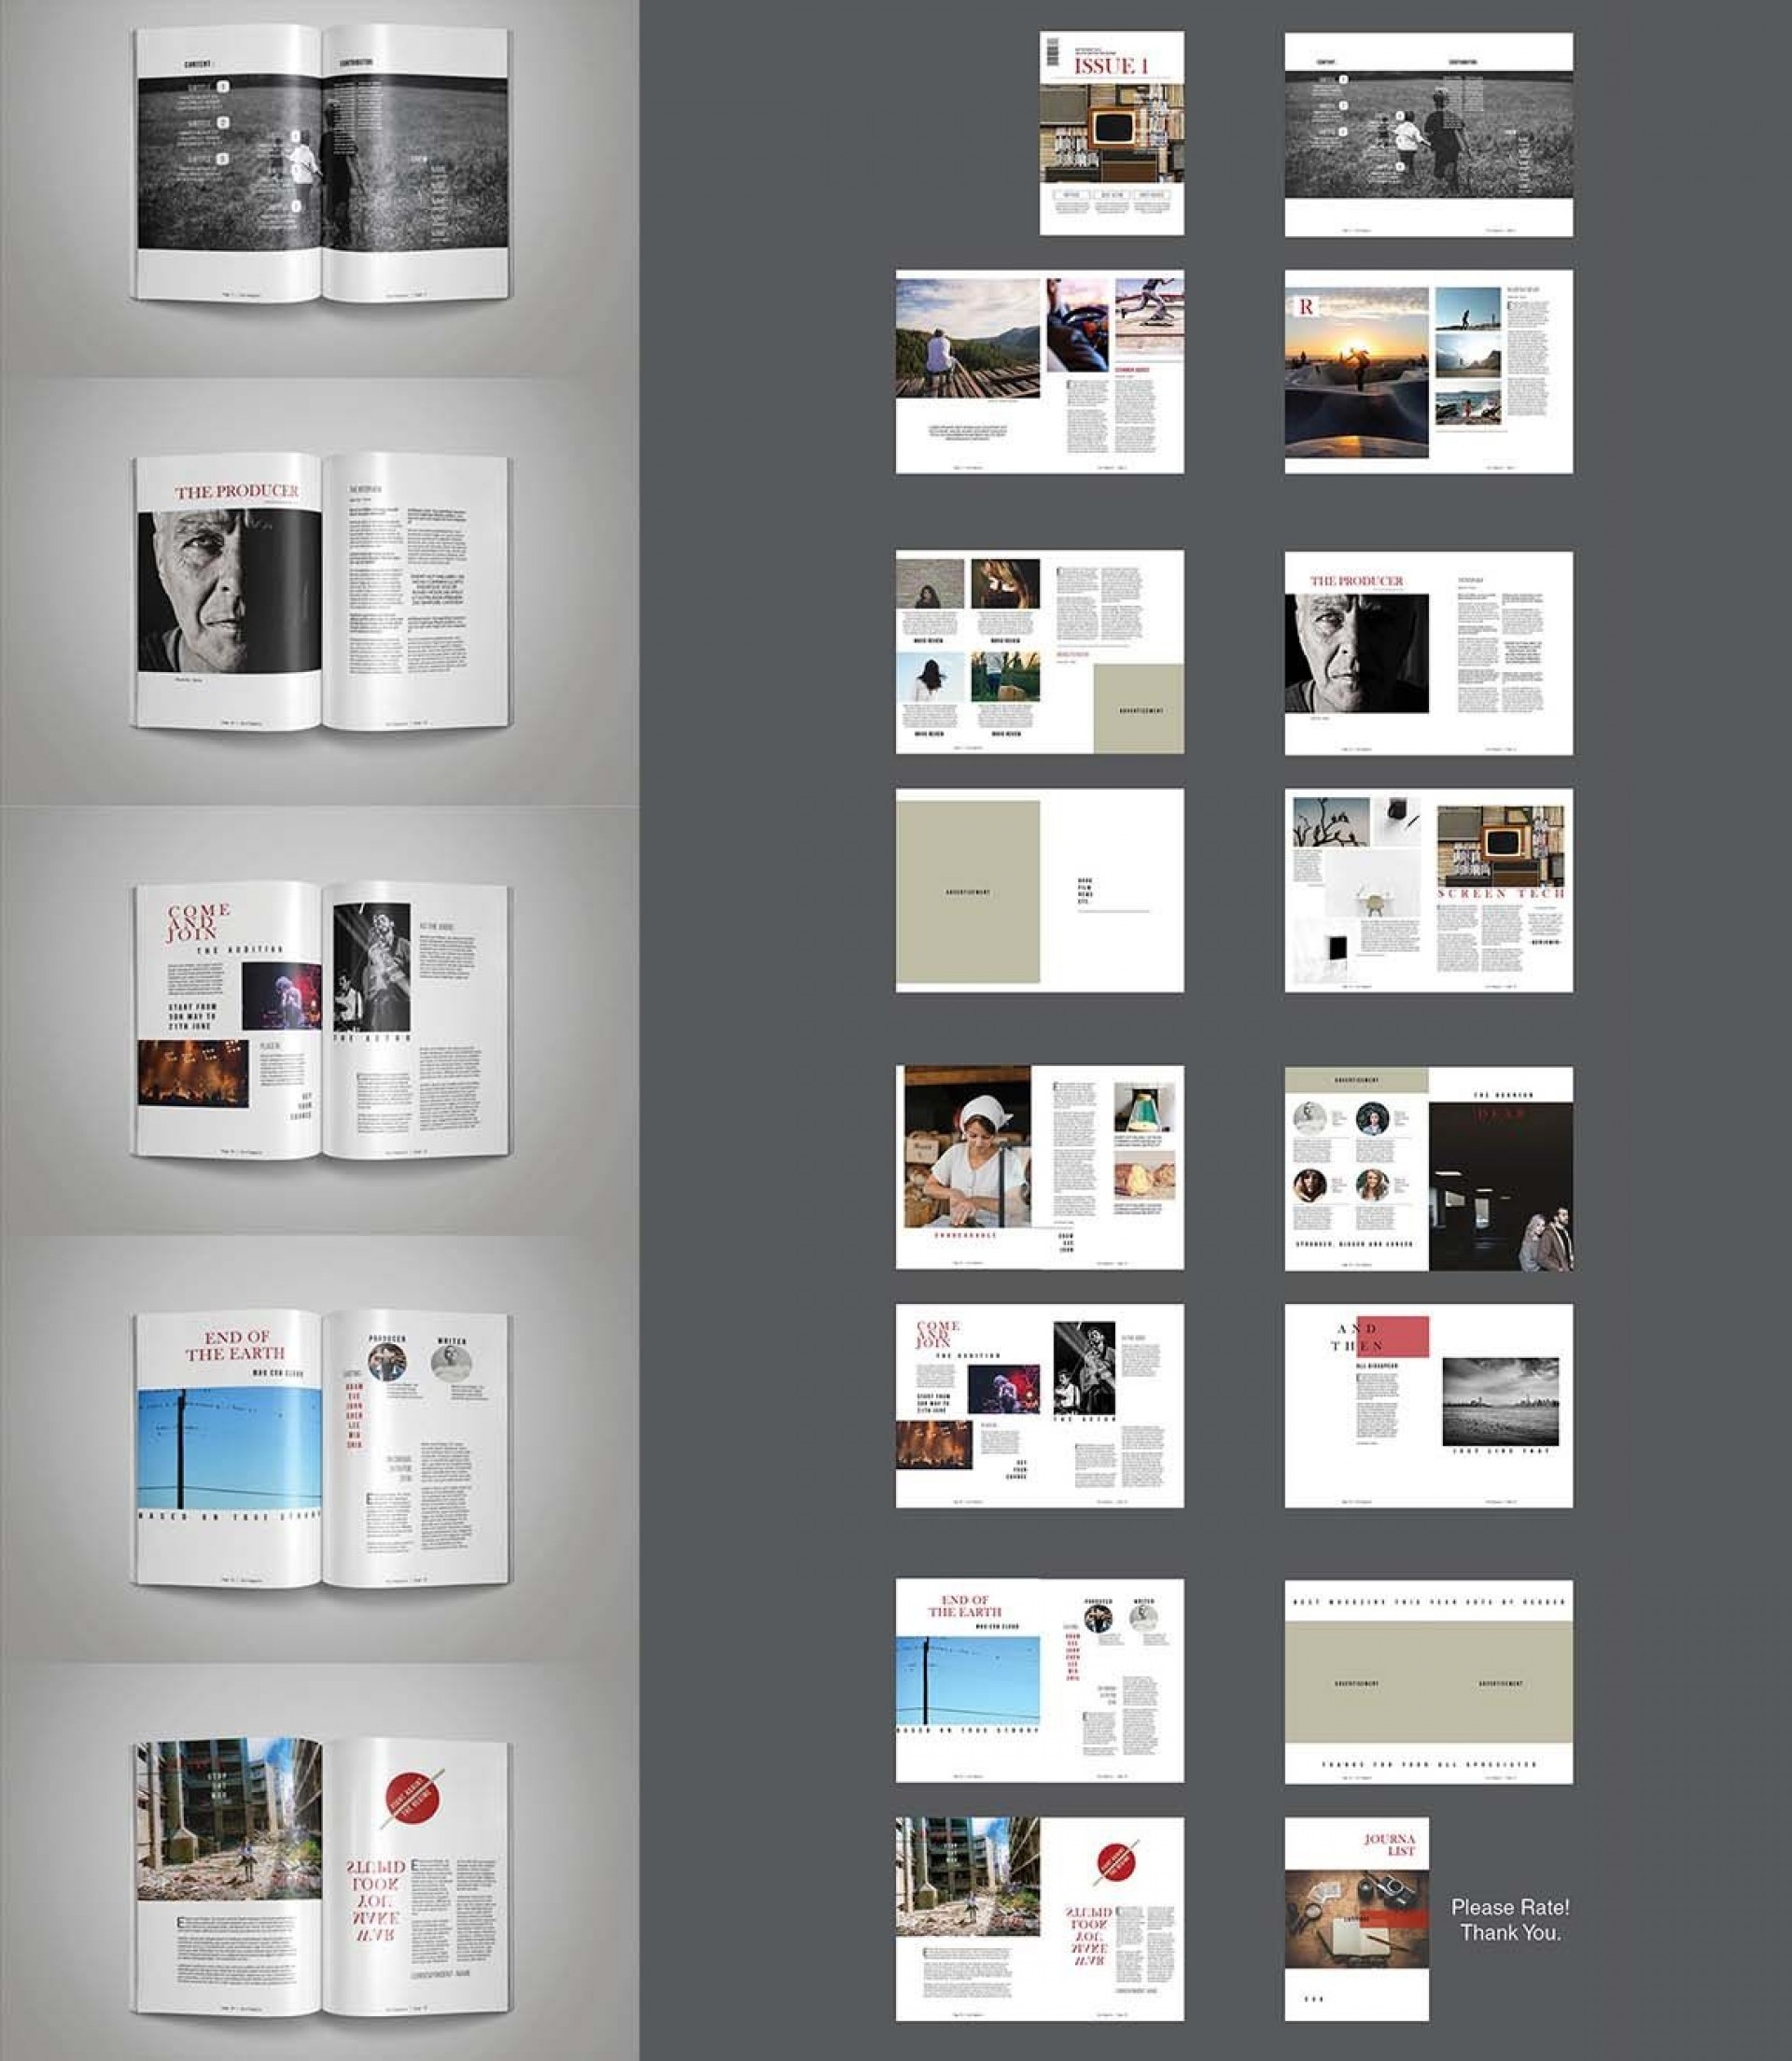 009 Stupendou Indesign Magazine Template Free High Resolution  Cover Download Indd Cs51920